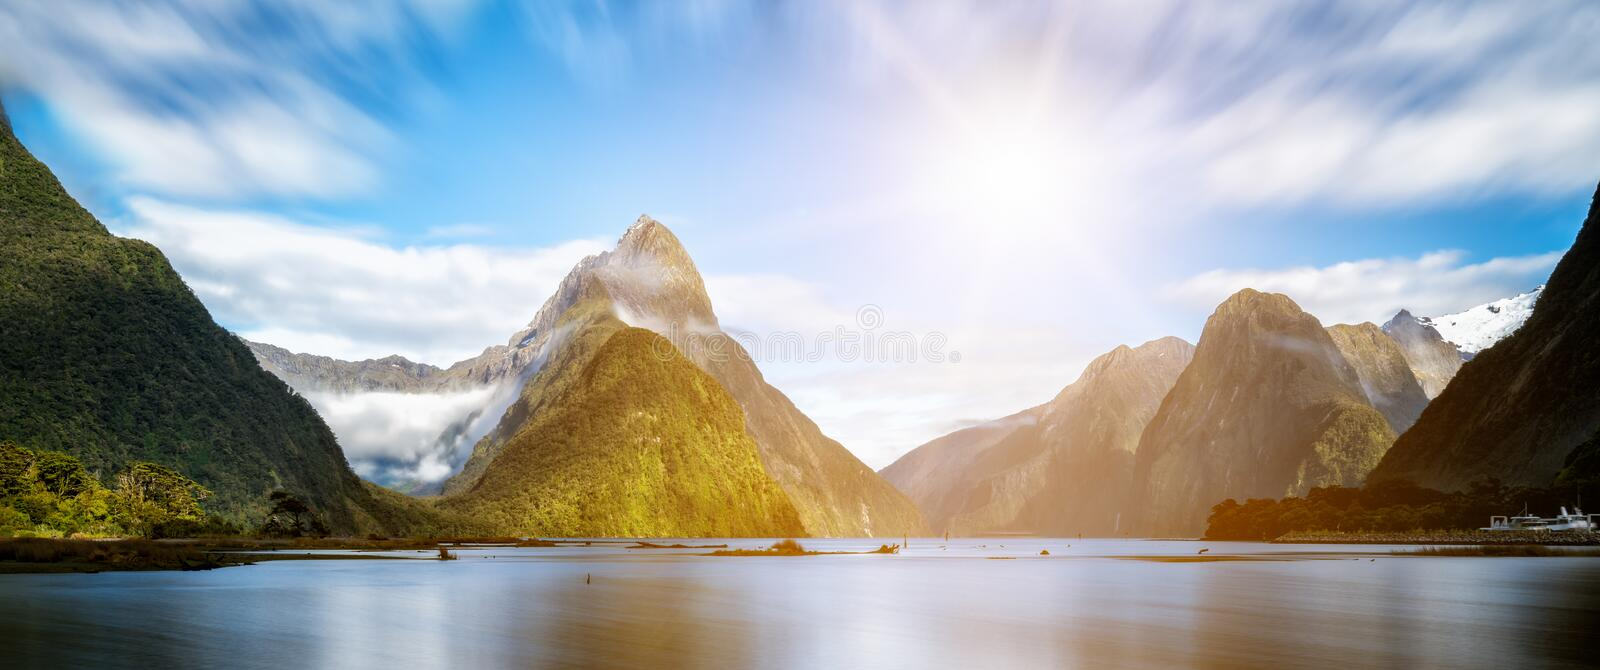 Milford Sound in New Zealand. Milford Sound, New Zealand. - Mitre Peak is the iconic landmark of Milford Sound in Fiordland National Park, South Island of New royalty free stock photography